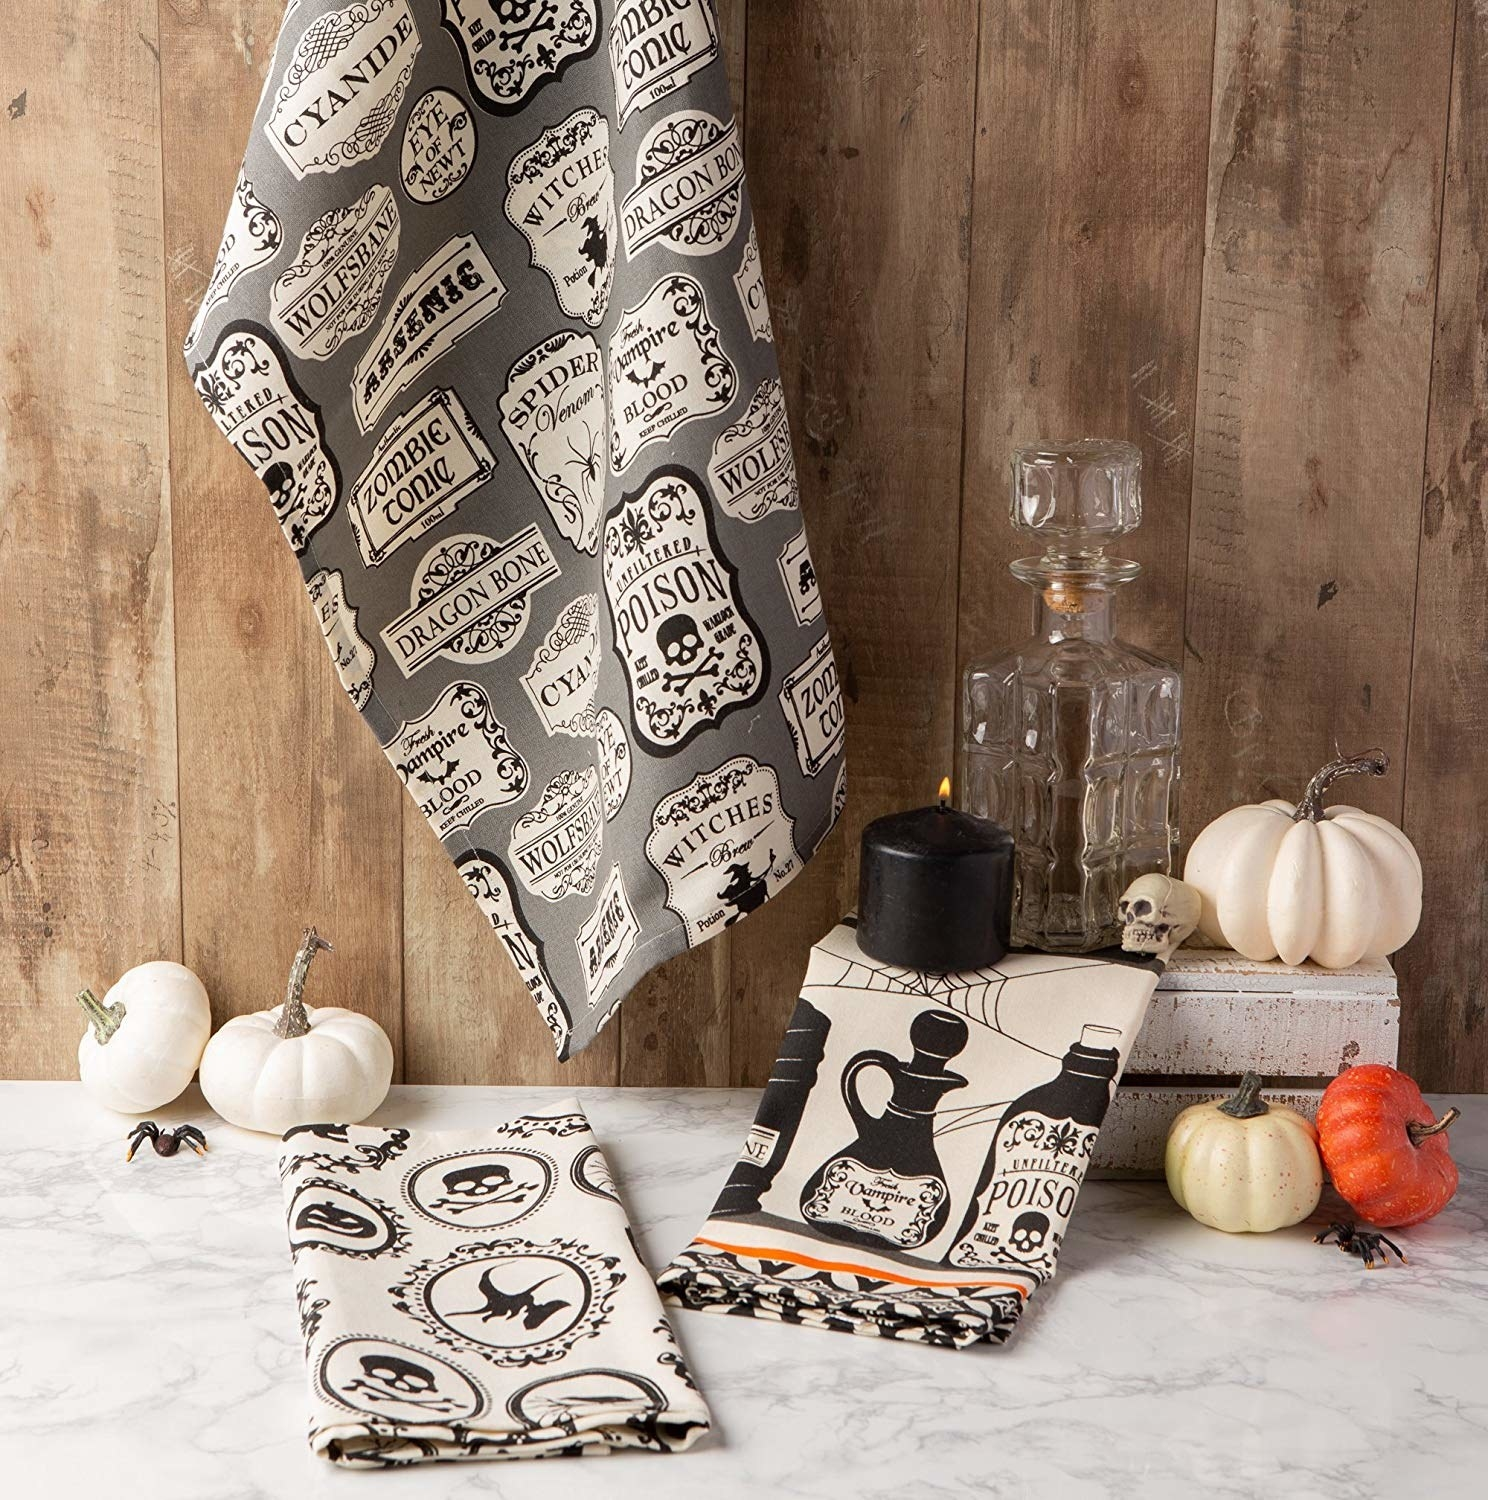 three tea towels with vintage style halloween patterns like poison labels and skulls